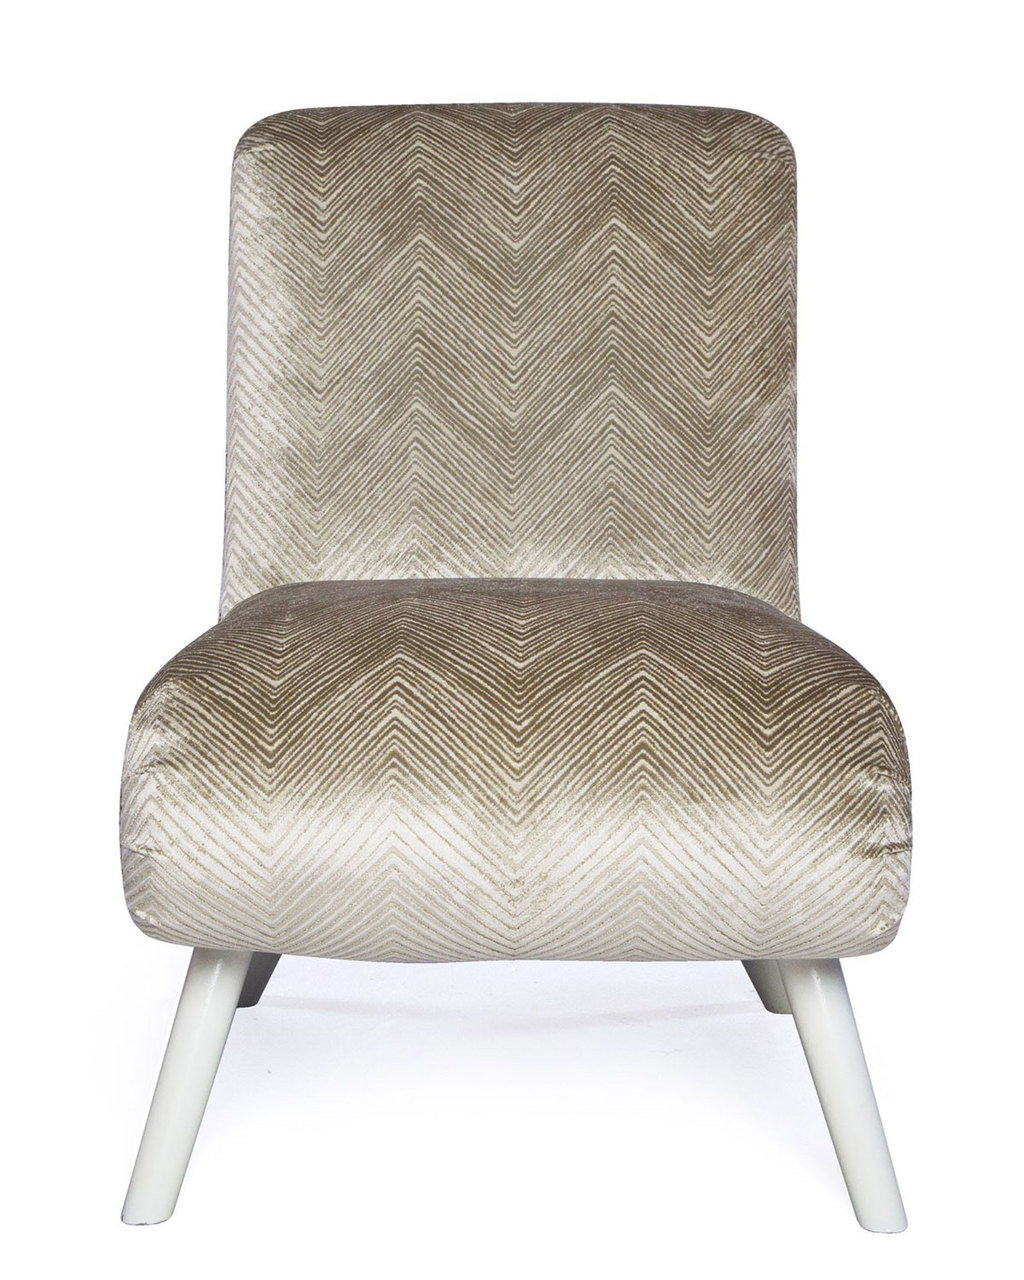 Cool Casablanca Slipper Chair Caraccident5 Cool Chair Designs And Ideas Caraccident5Info